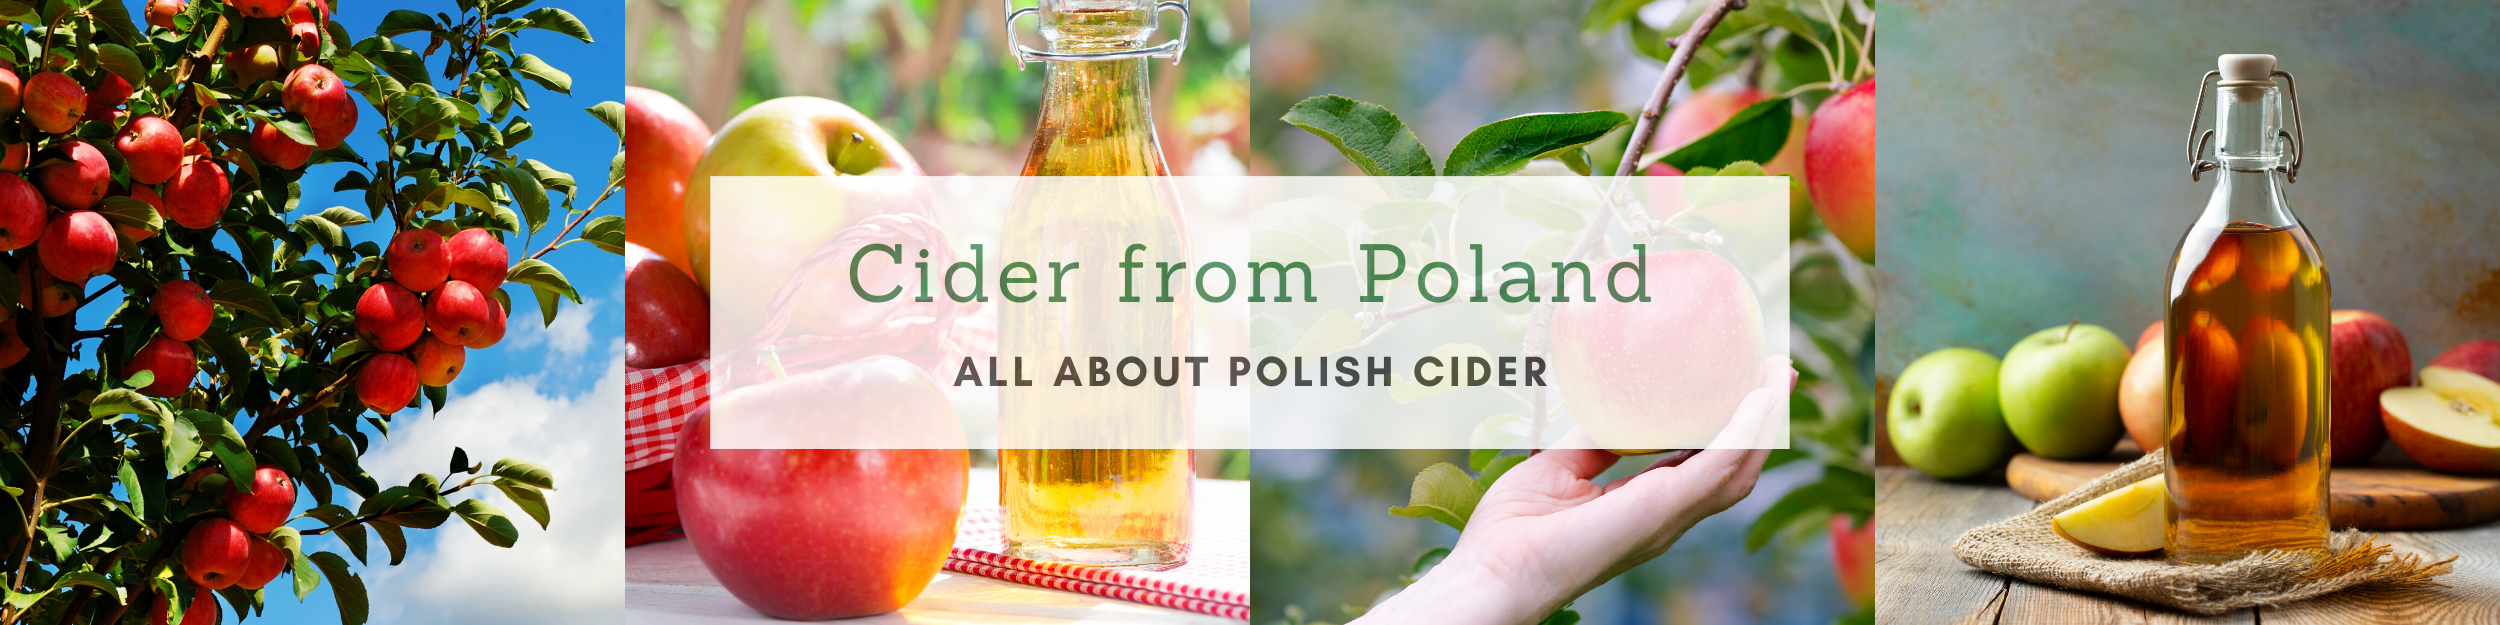 Cider from Poland